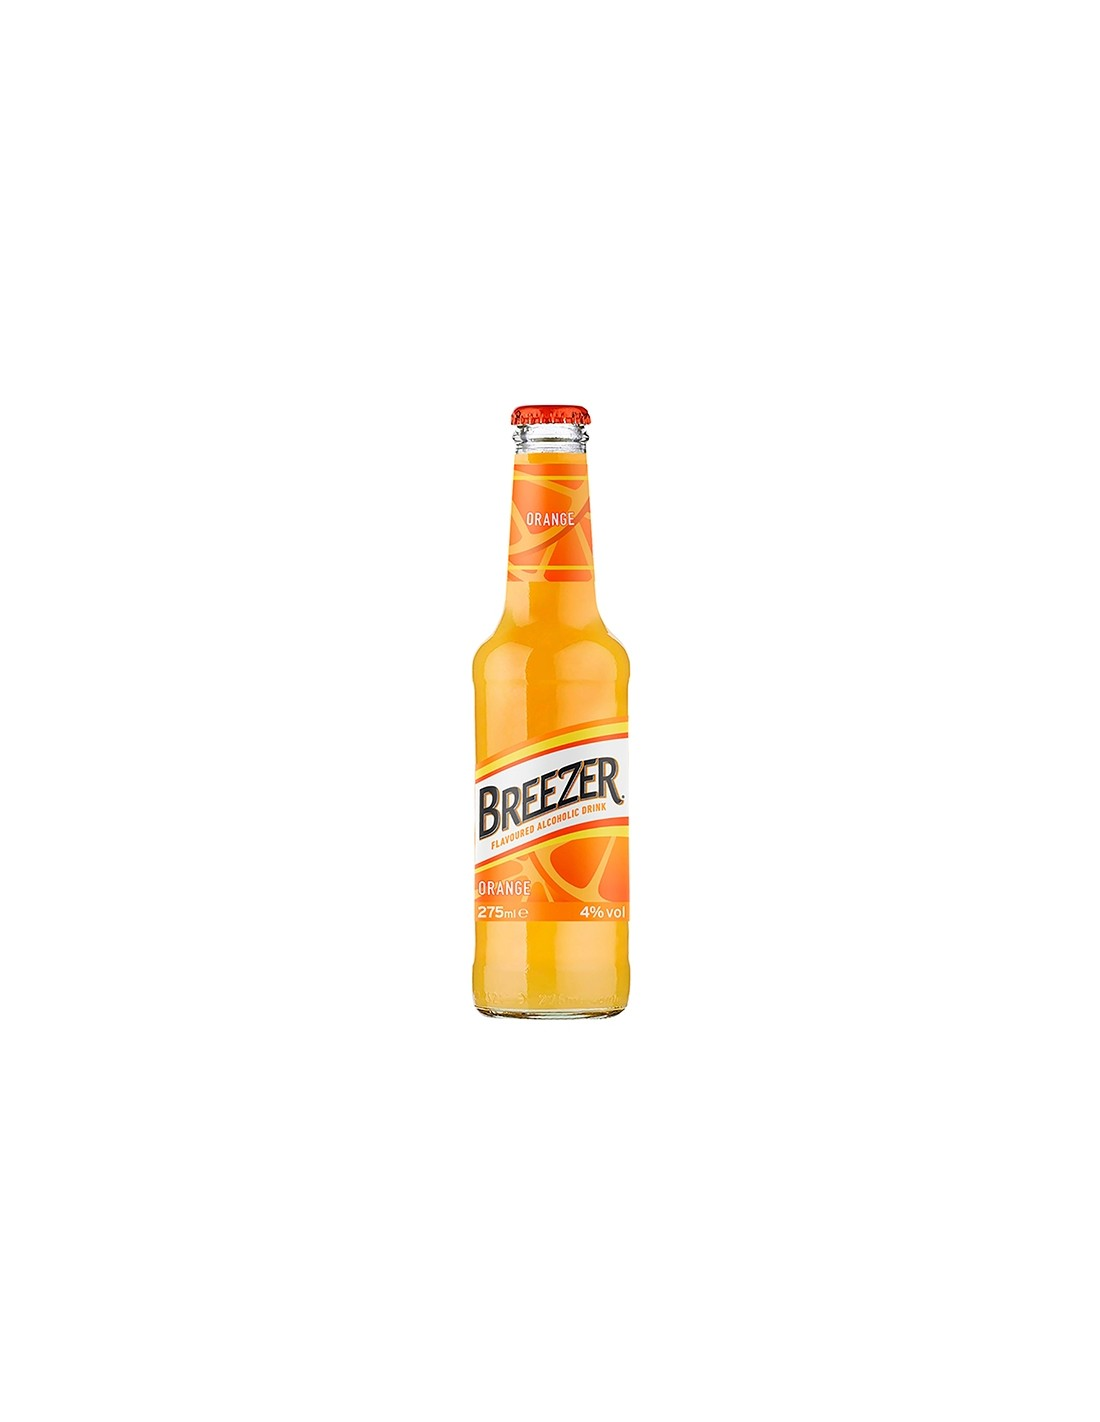 Cocktail Breezer Orange, 4% alc., 0.275L, Belgia